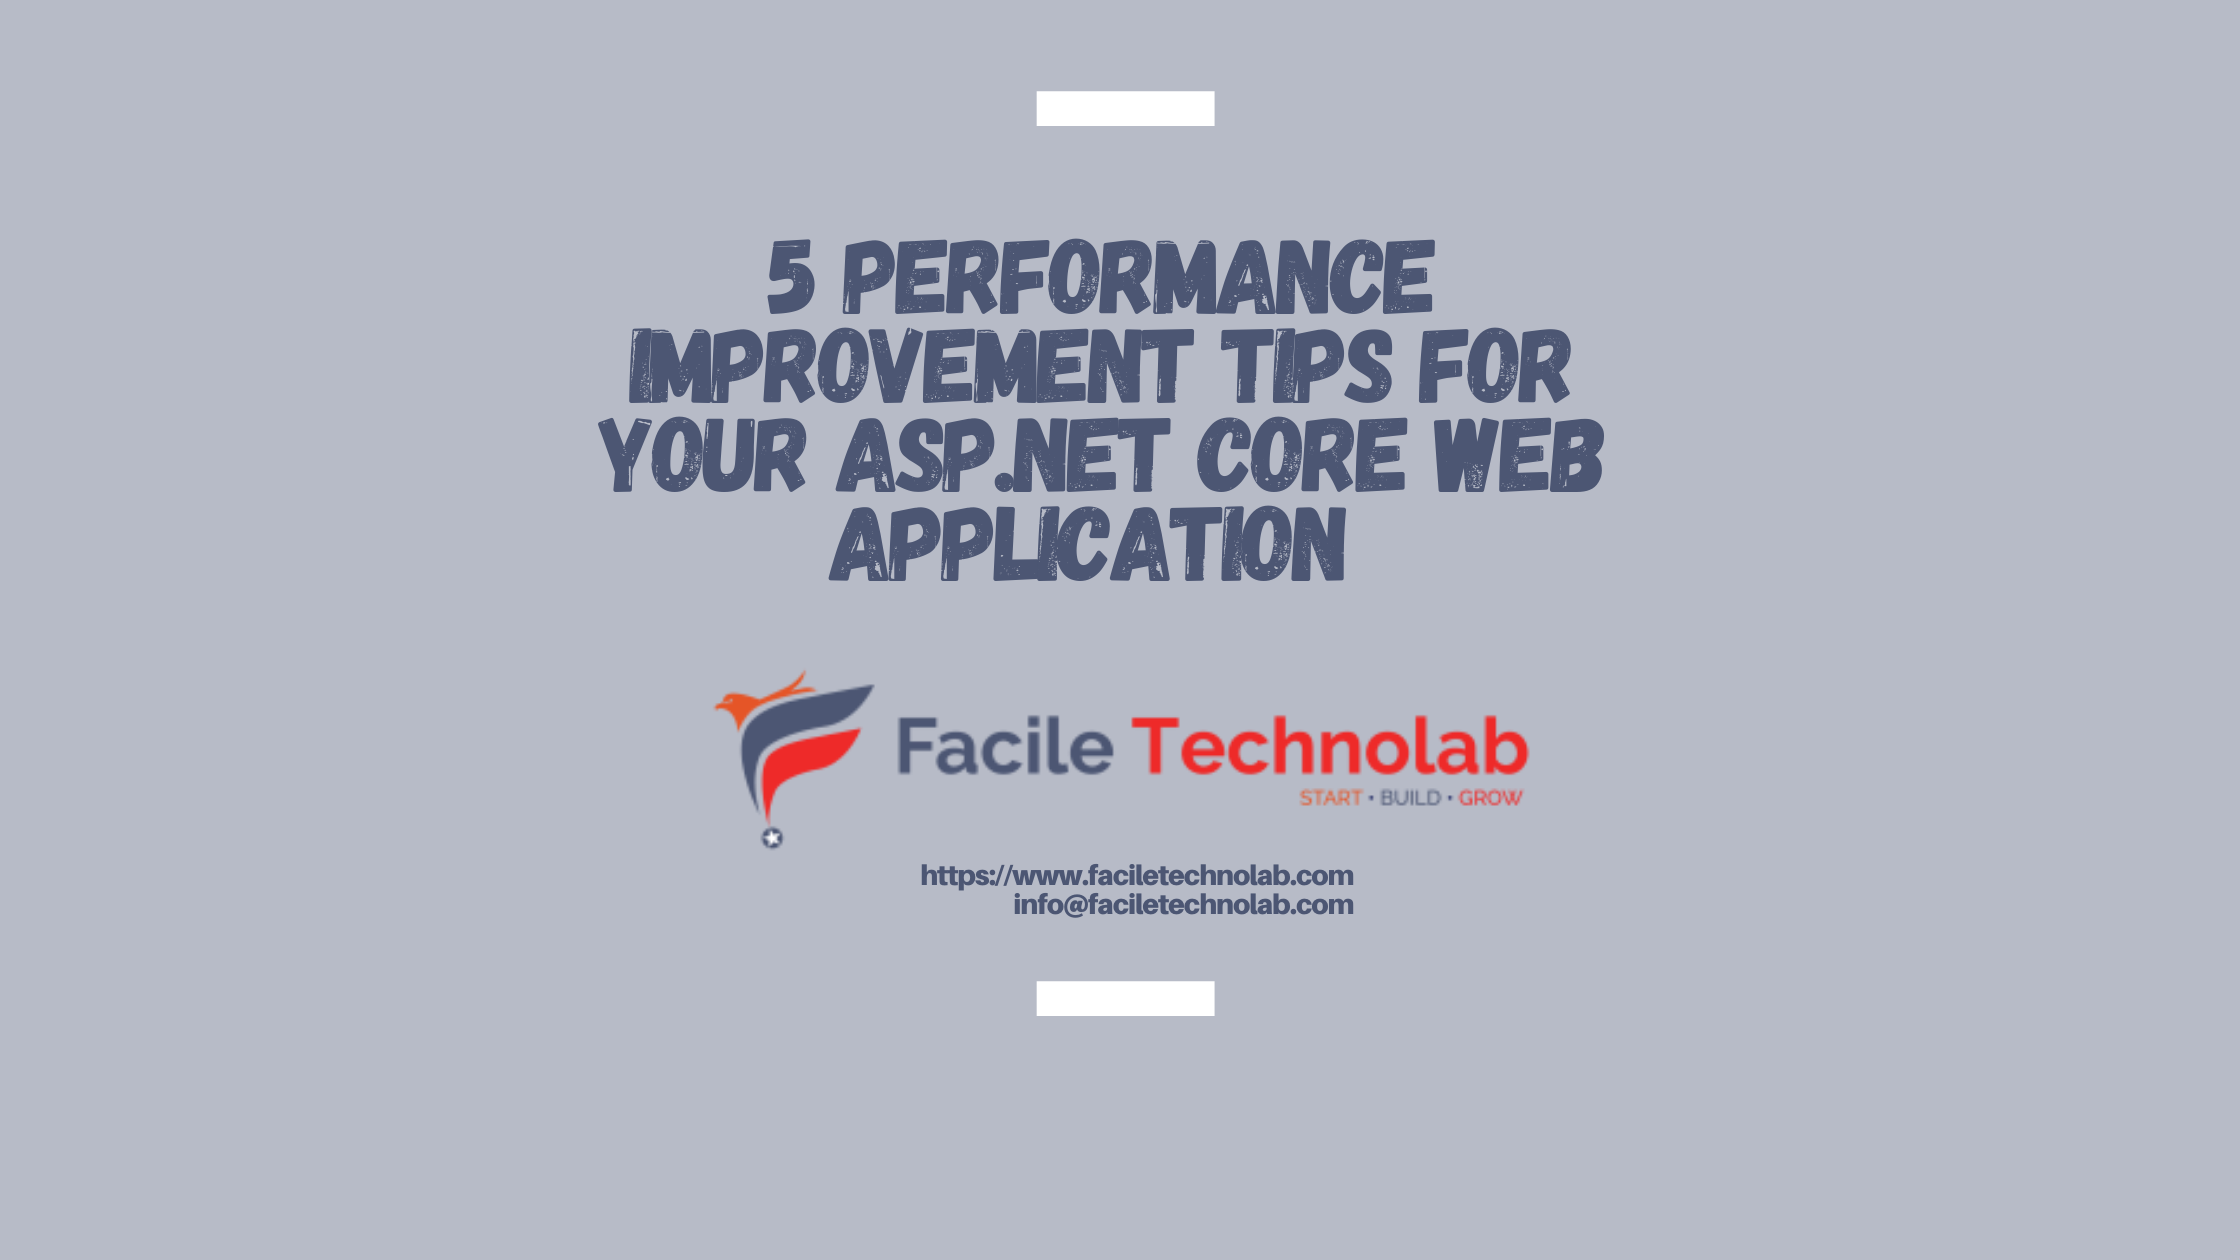 5 performance improvement tips for your asp.net core web application